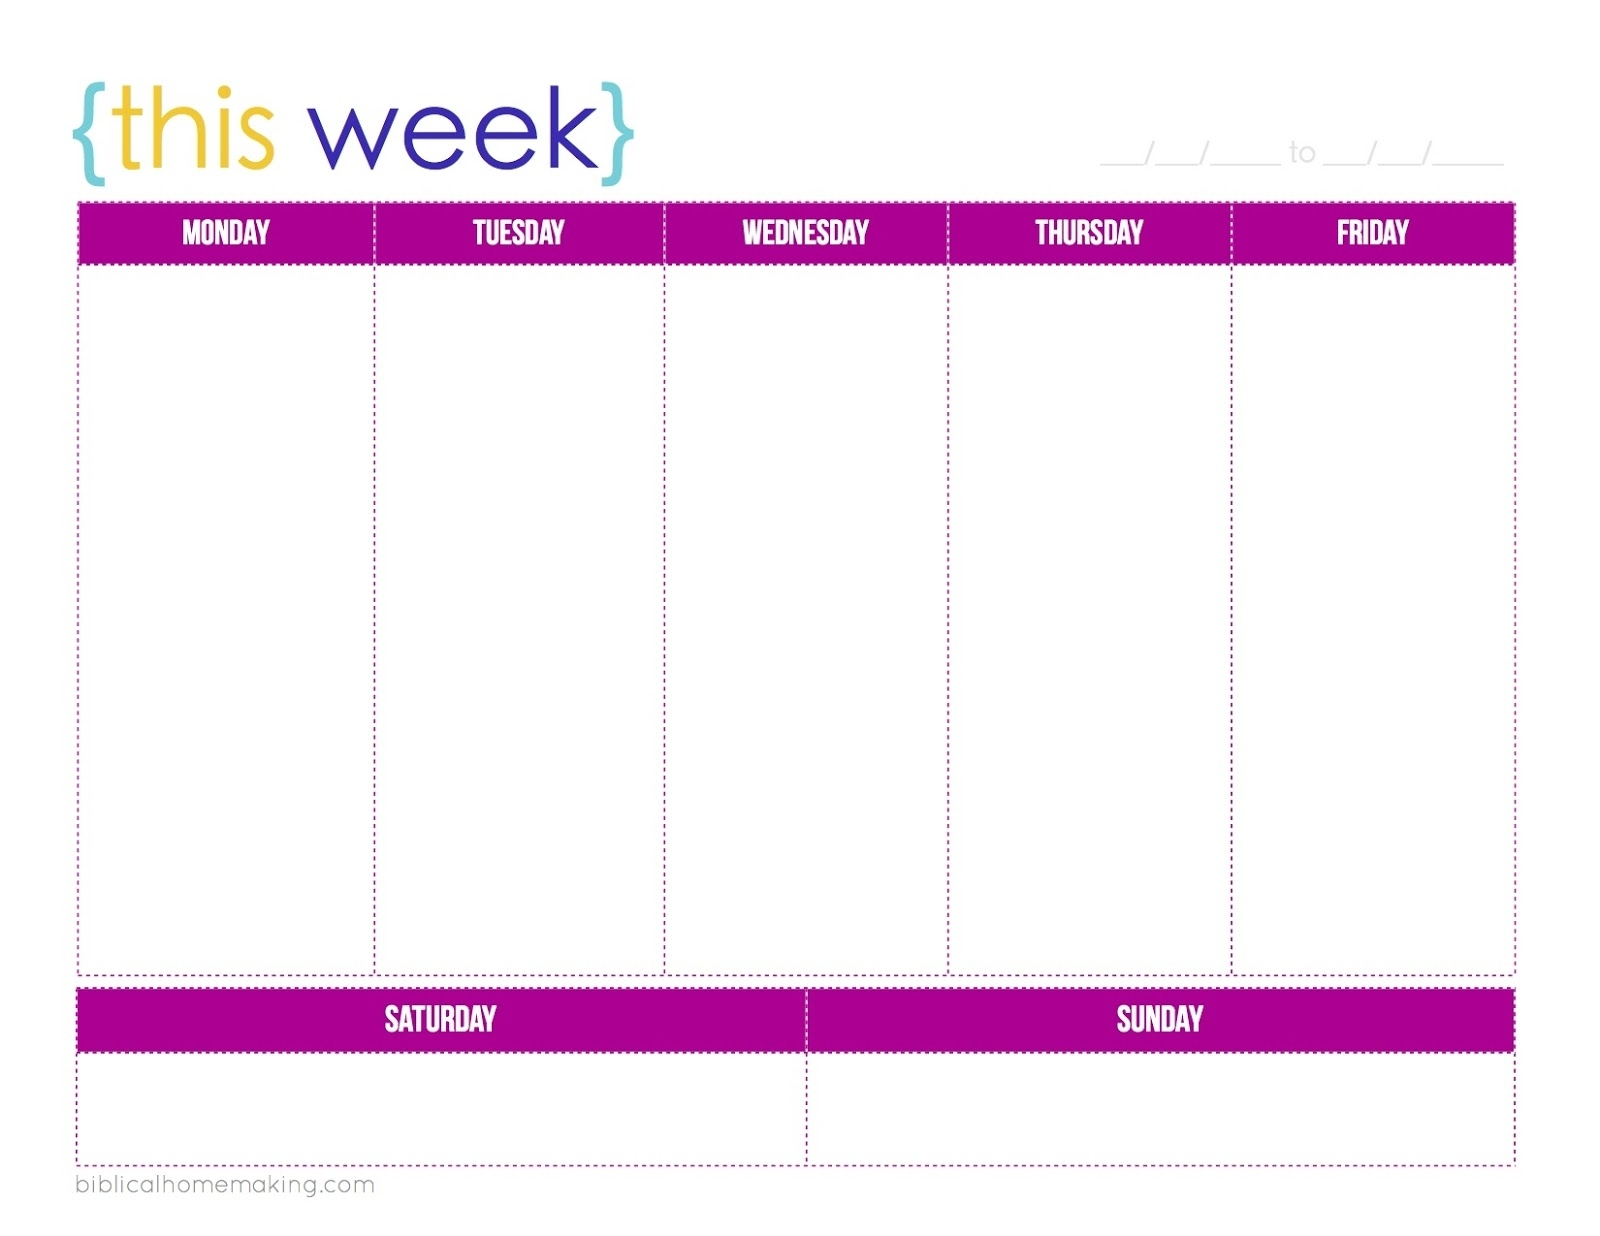 One Week Calendar Printable Schedule Ate Blank | Smorad for One Week Blank Calendar Printable